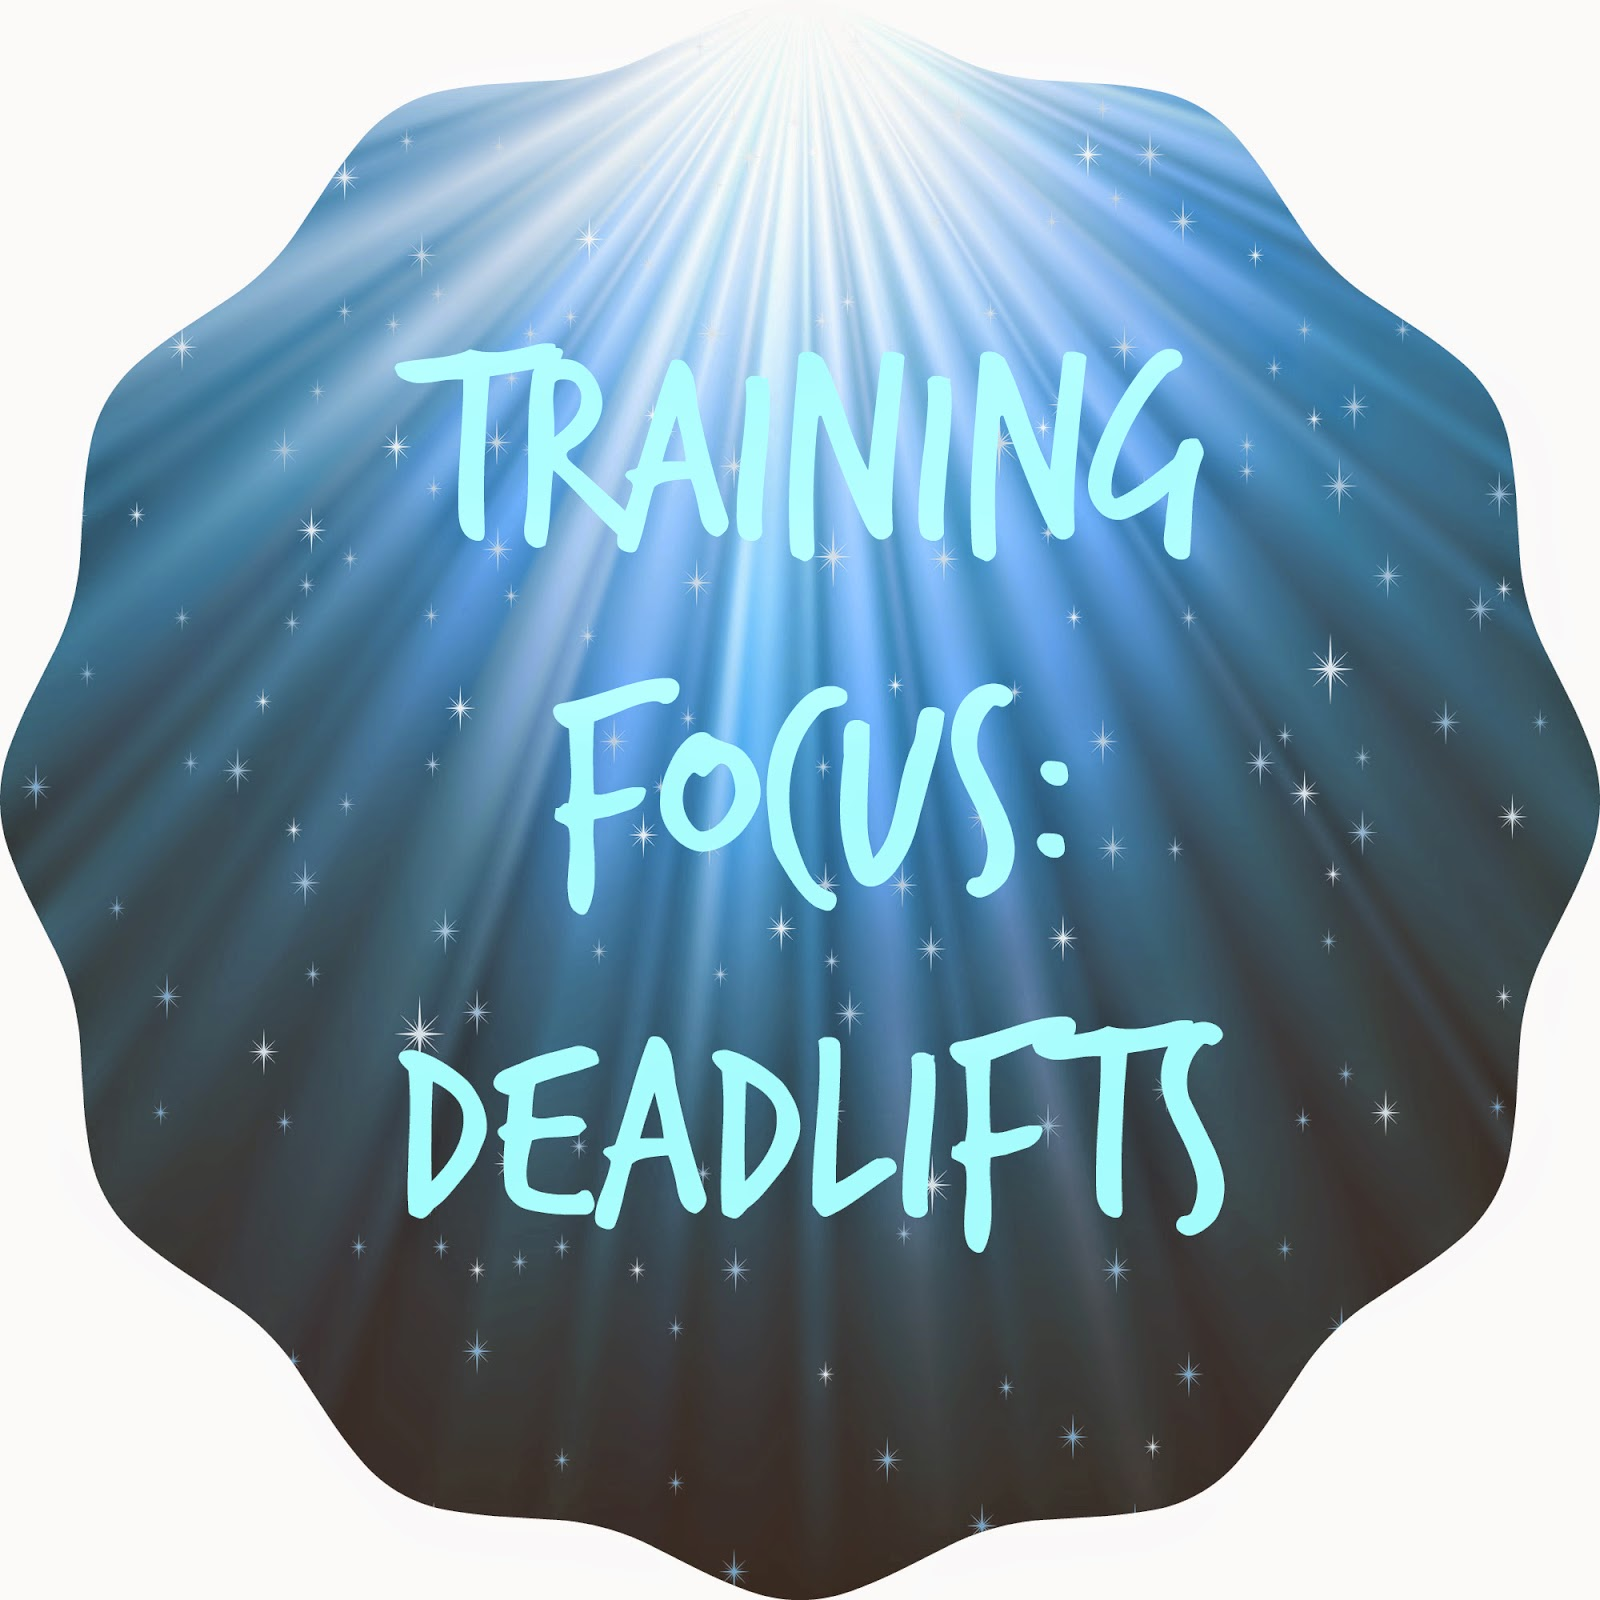 my general life training focus deadlifts